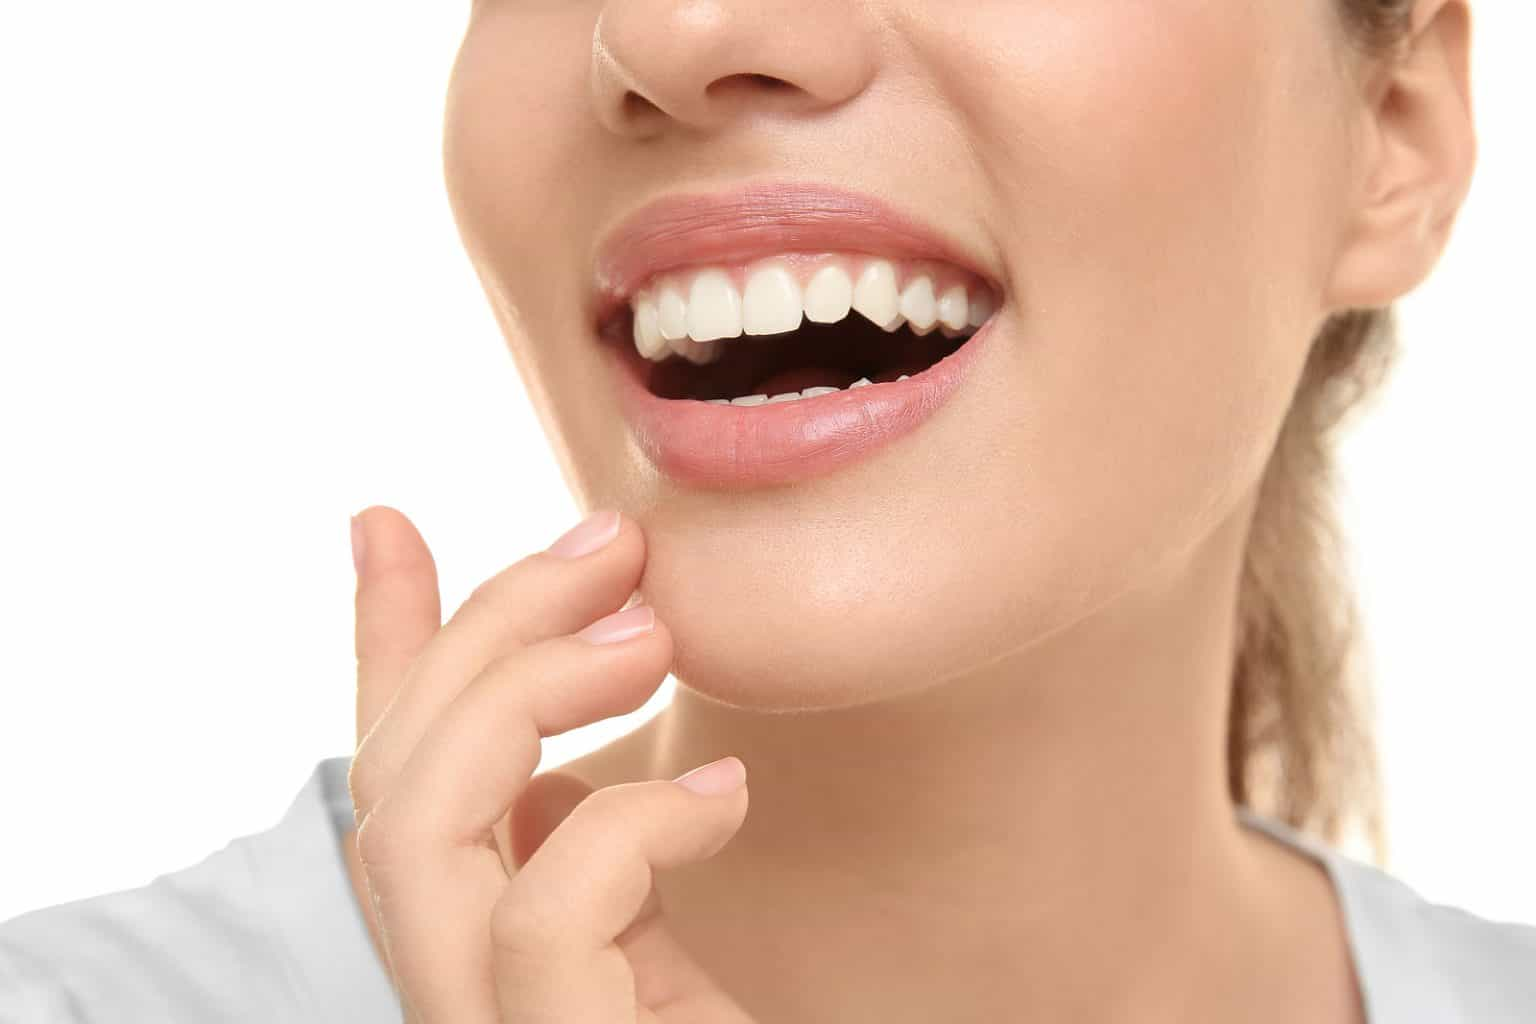 How to Take Care of Bonded Teeth